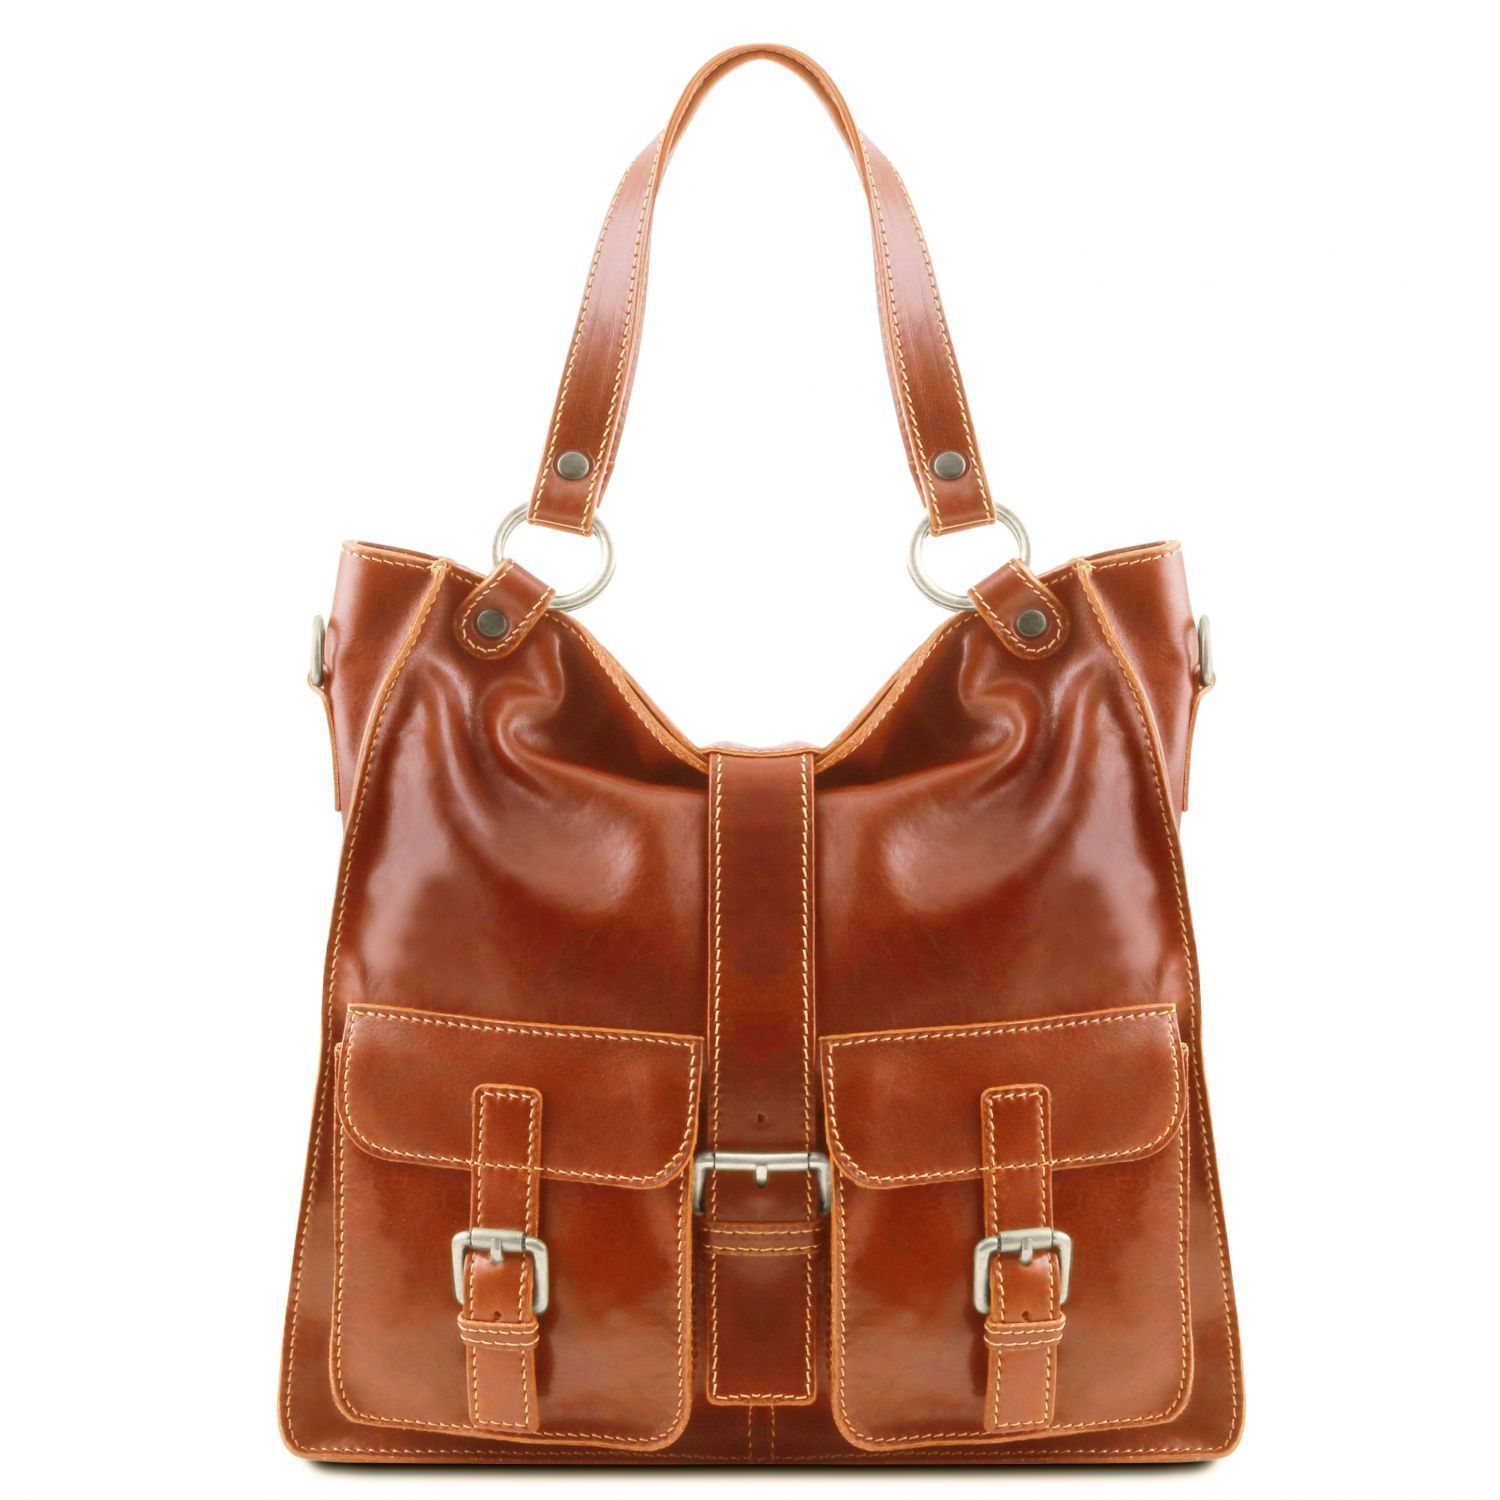 Melissa - Lady leather bag (TL140928) - Leather shoulder bags | DILUSSOBAGS